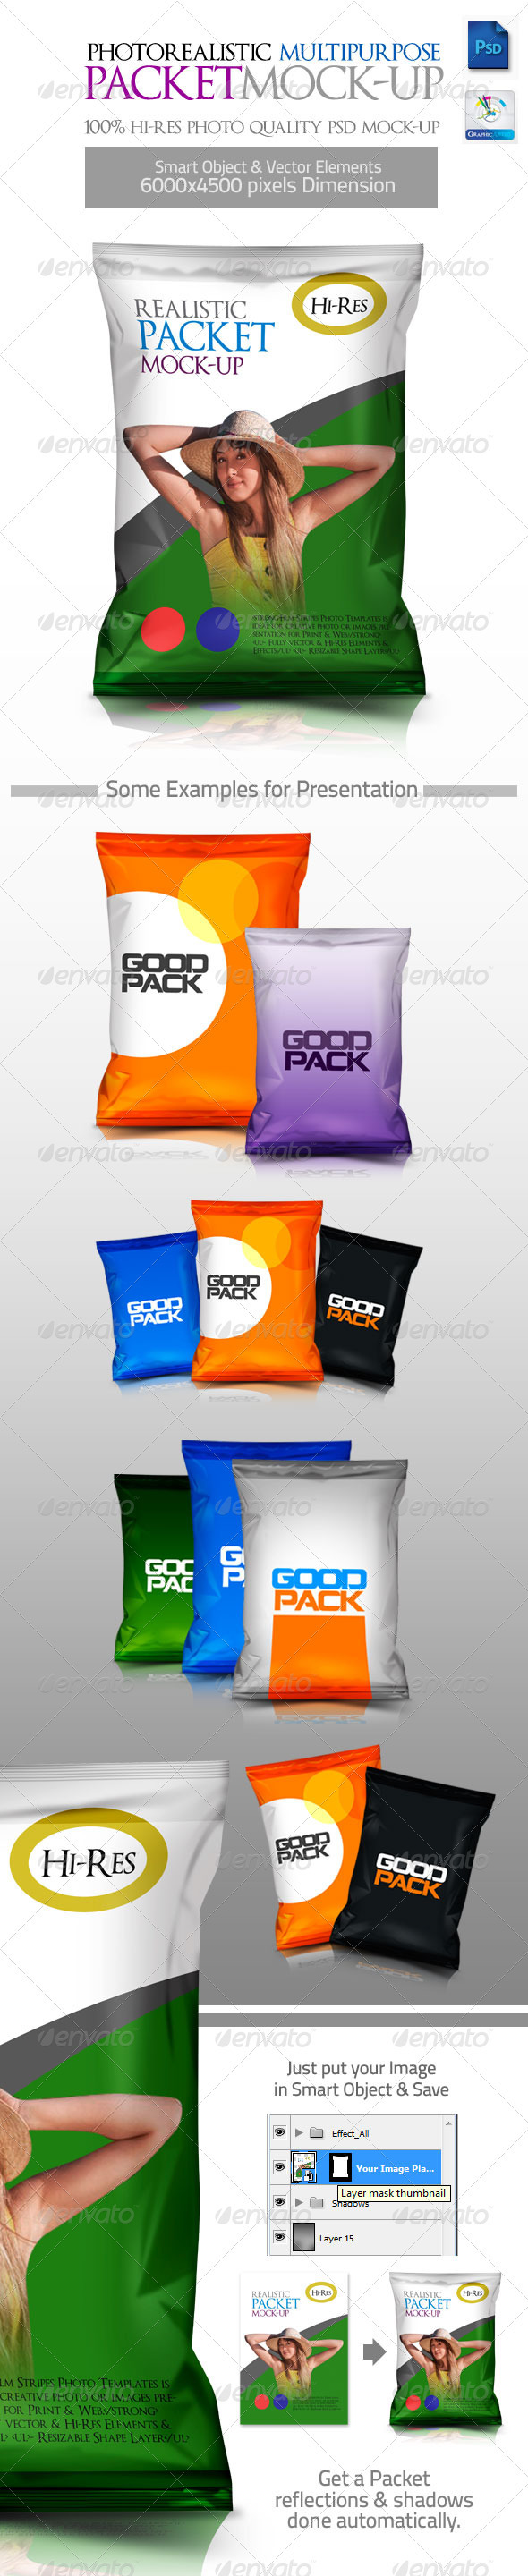 GraphicRiver Photorealistic Multipurpose Packet Mock-up 3250092